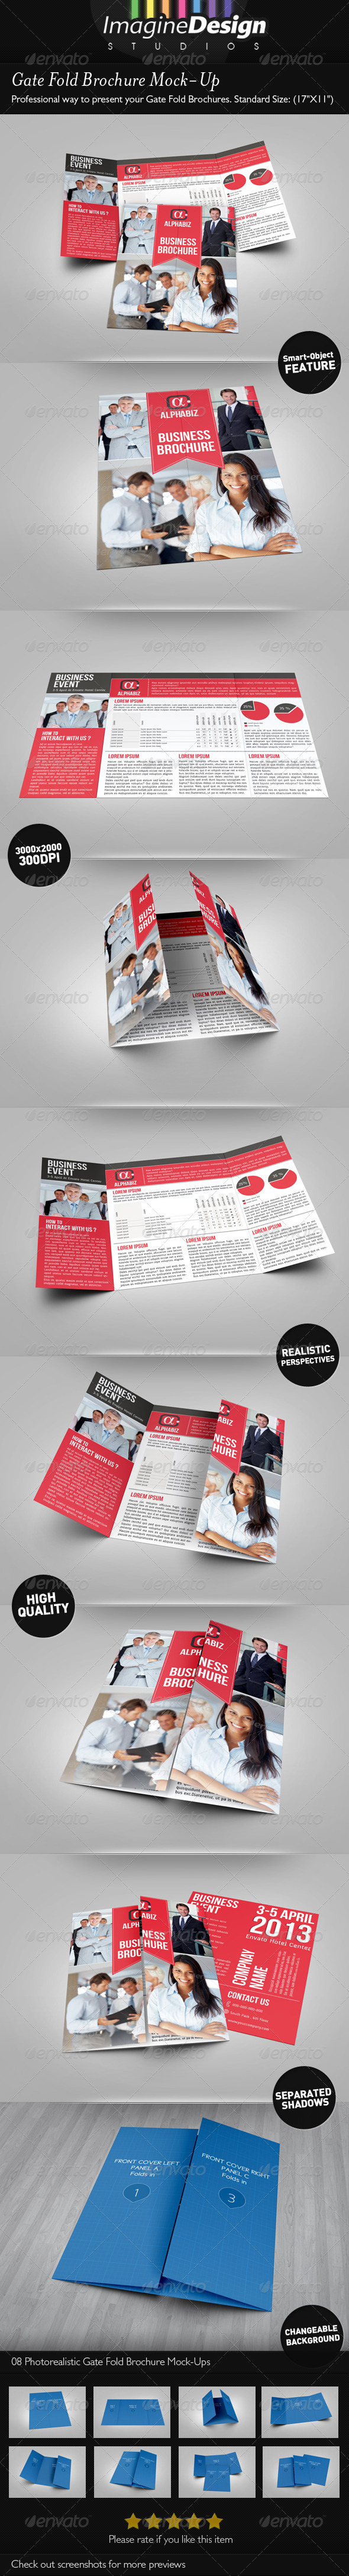 GraphicRiver Gate Fold Brochure Mock-Up 4065652